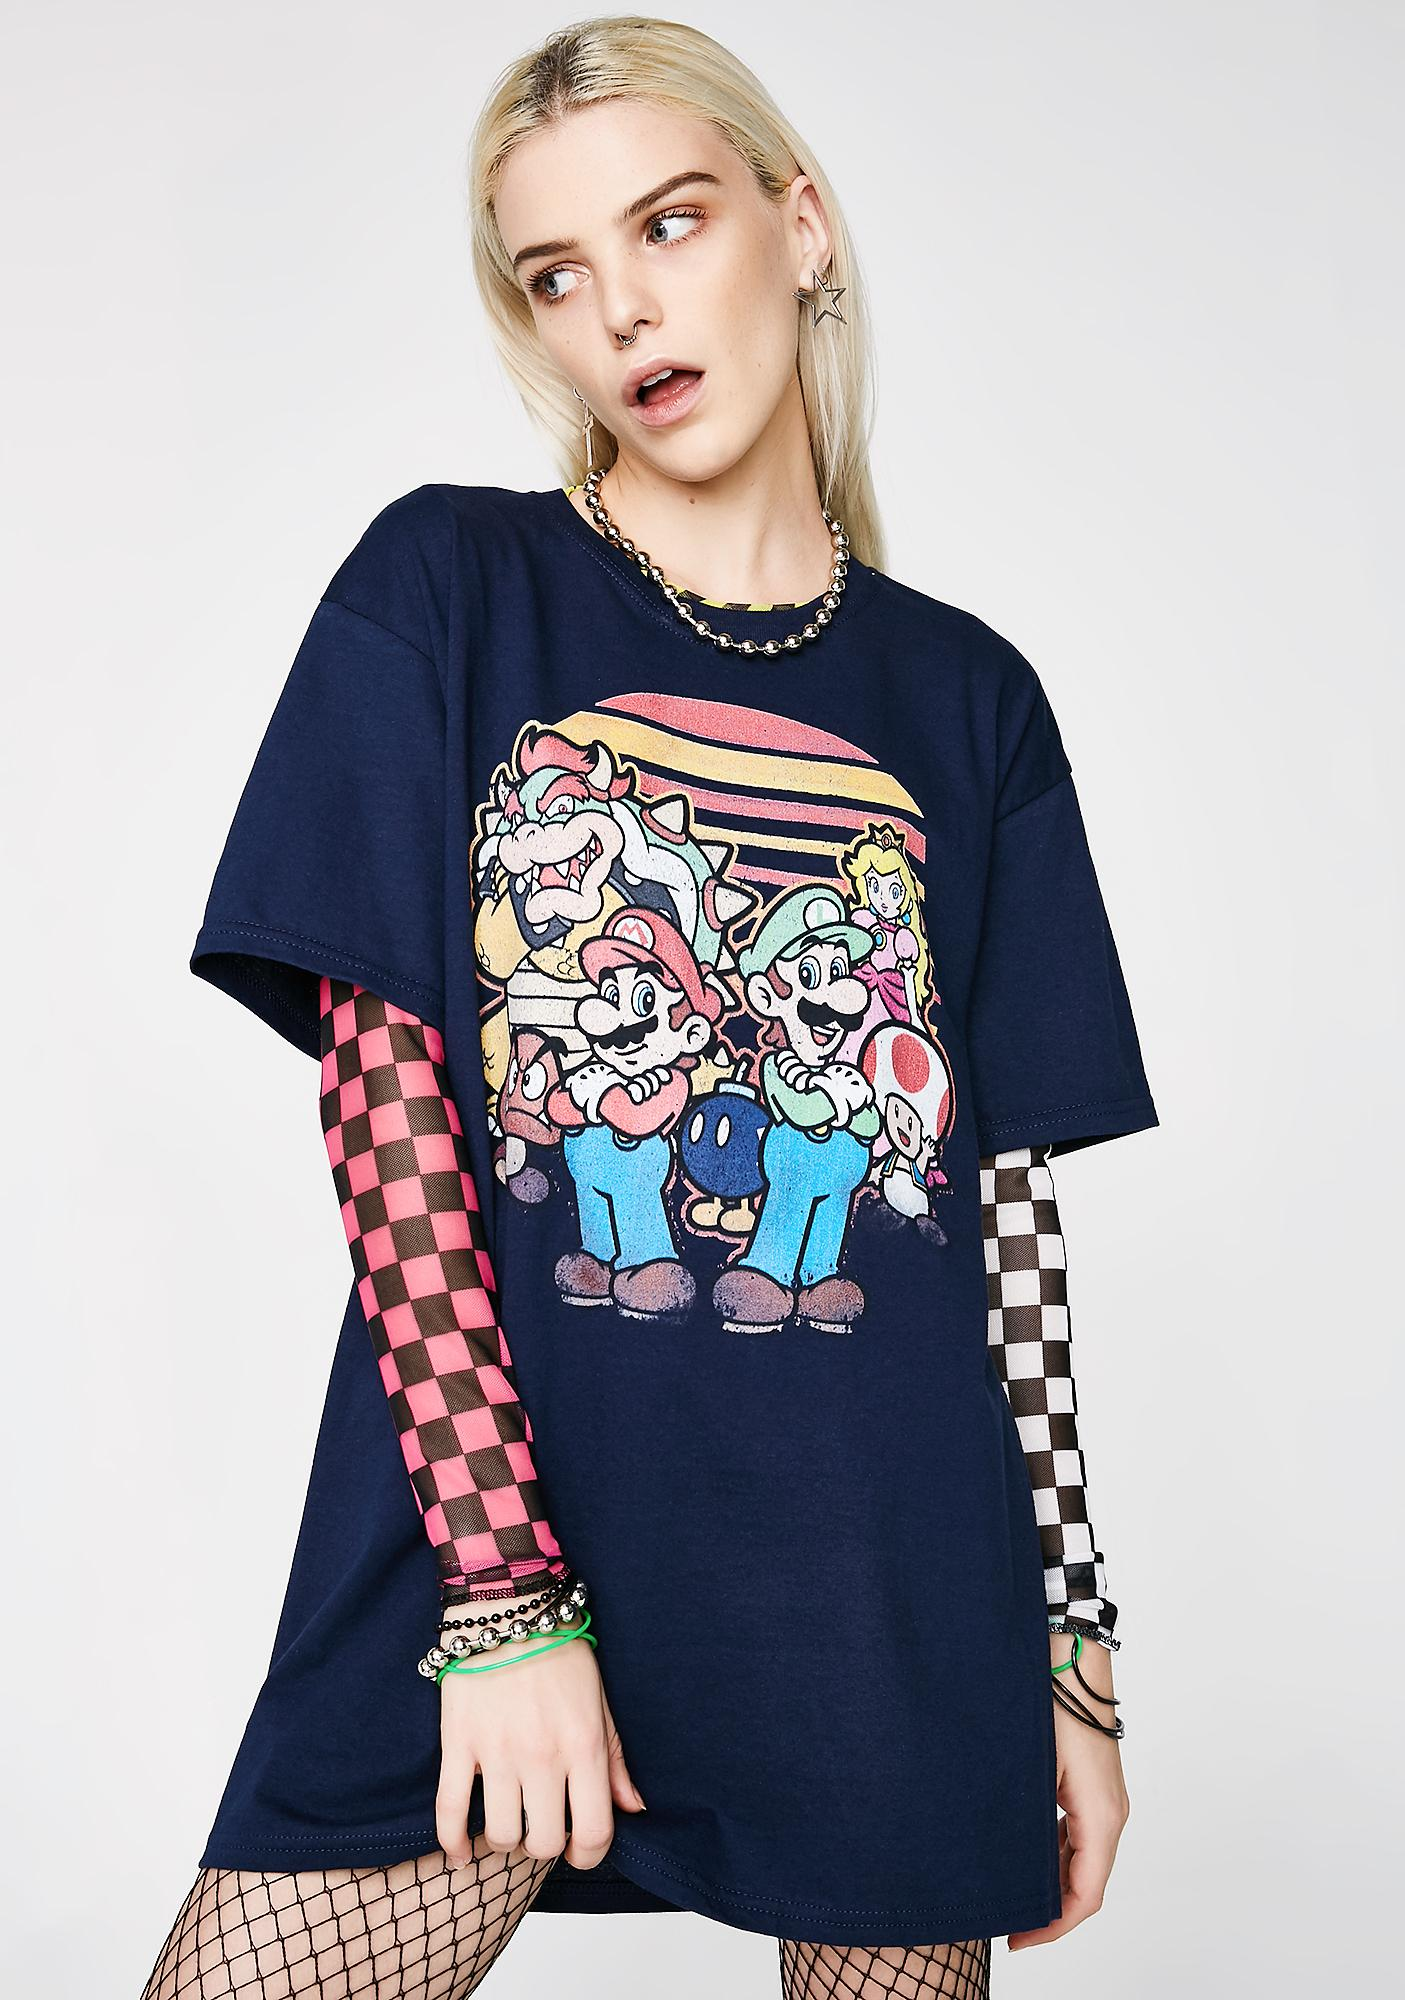 Ready To Race Graphic Tee